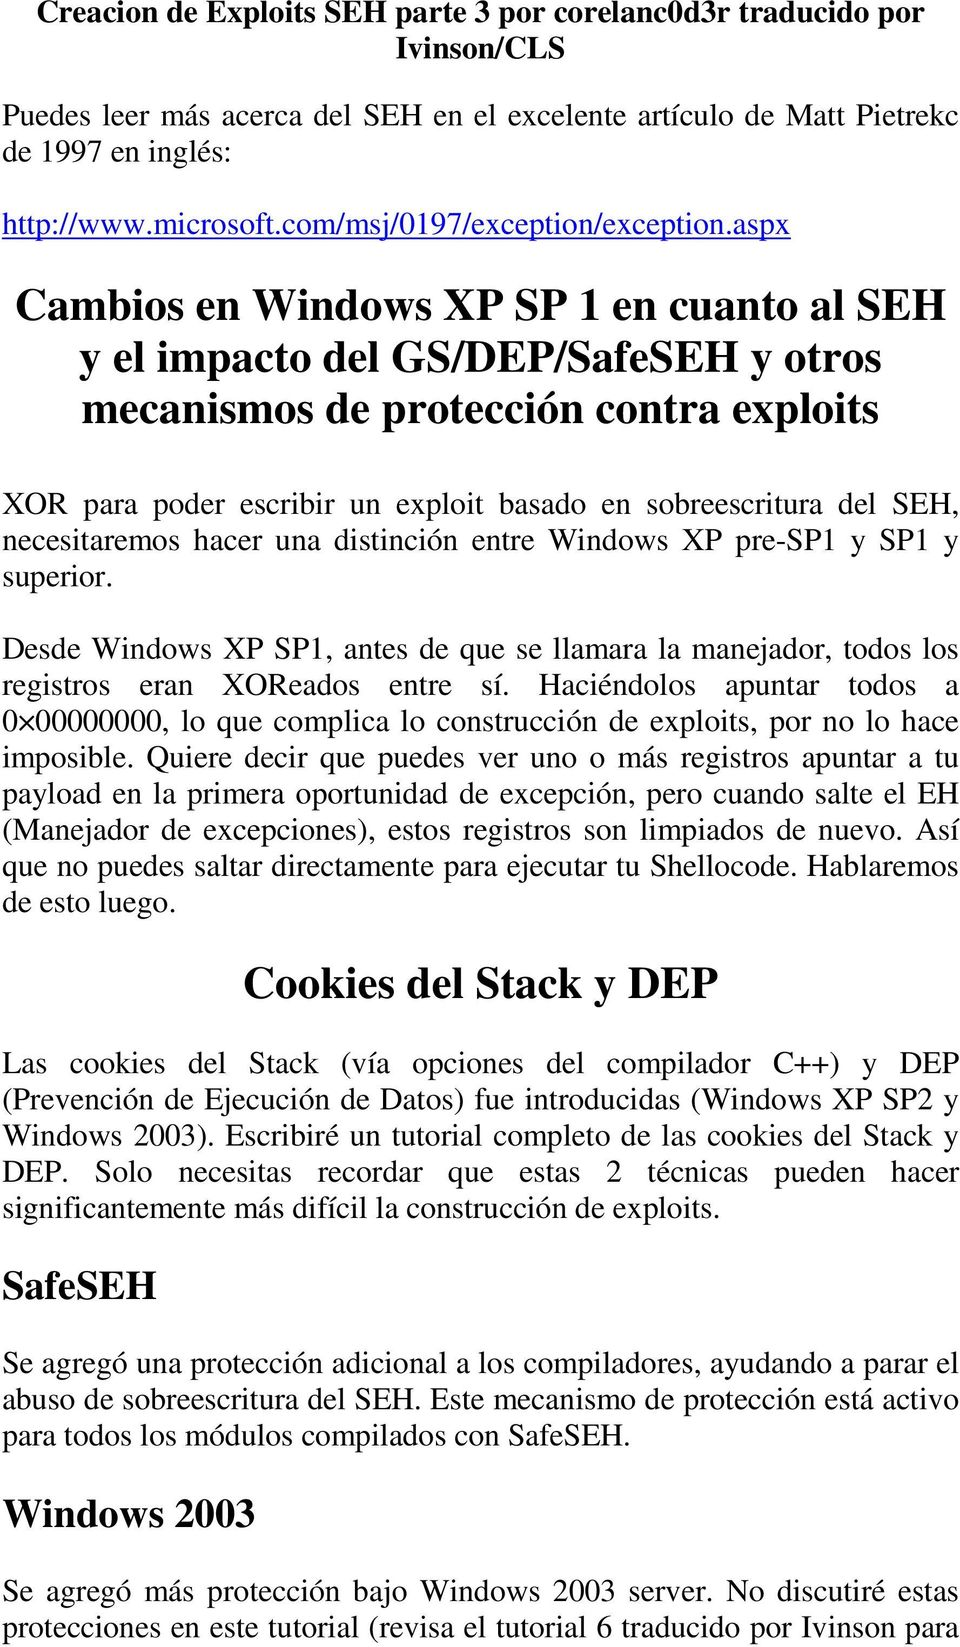 necesitaremos hacer una distinción entre Windows XP pre-sp1 y SP1 y superior. Desde Windows XP SP1, antes de que se llamara la manejador, todos los registros eran XOReados entre sí.